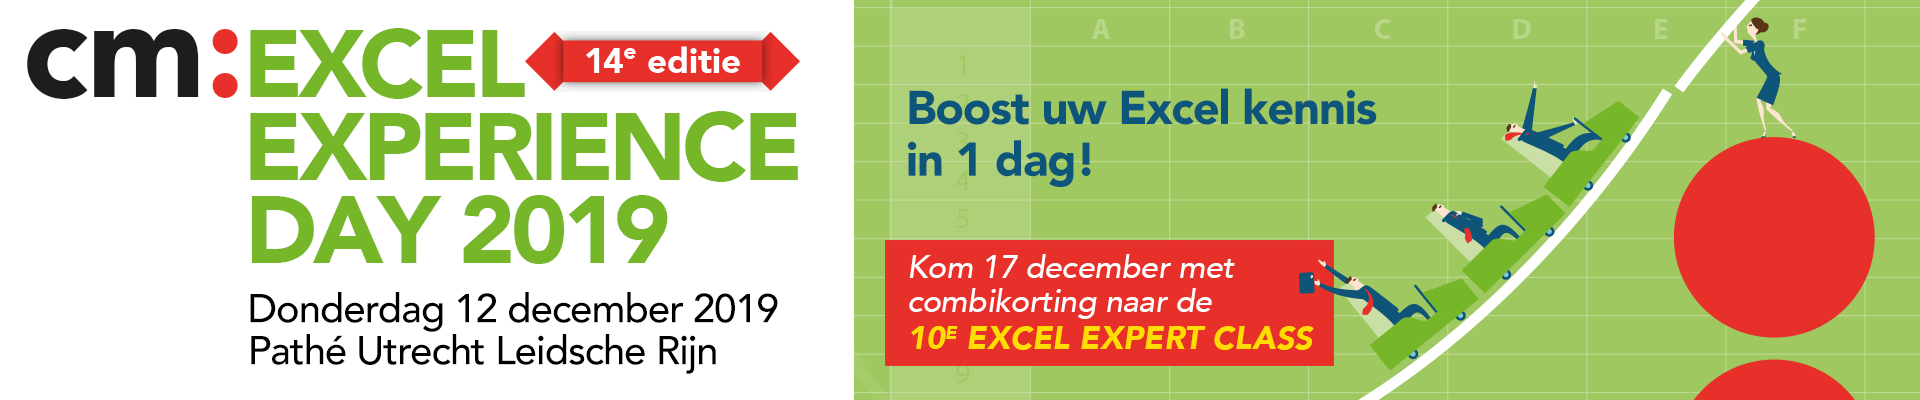 cm: Excel Experience Day en/of Excel Expert Class 2018